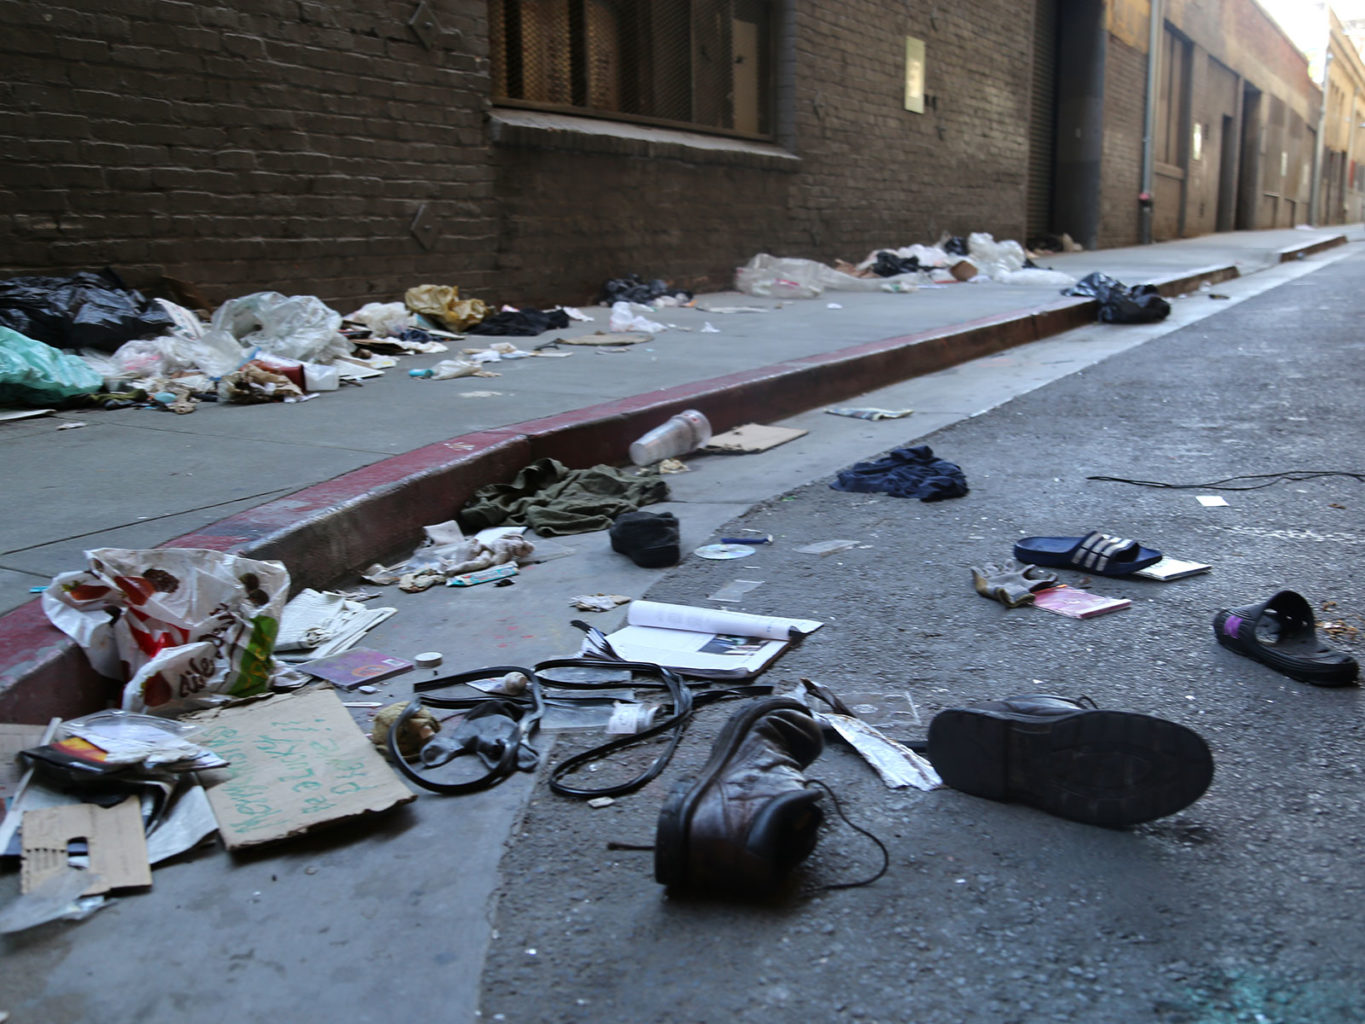 """The extent of San Francisco's sidewalk contamination is """"much greater than communities in Brazil or Kenya or India,"""" according to UC Berkeley's Dr. Lee Riley. (Mira Laing/2017 Special to S.F. Examiner)"""